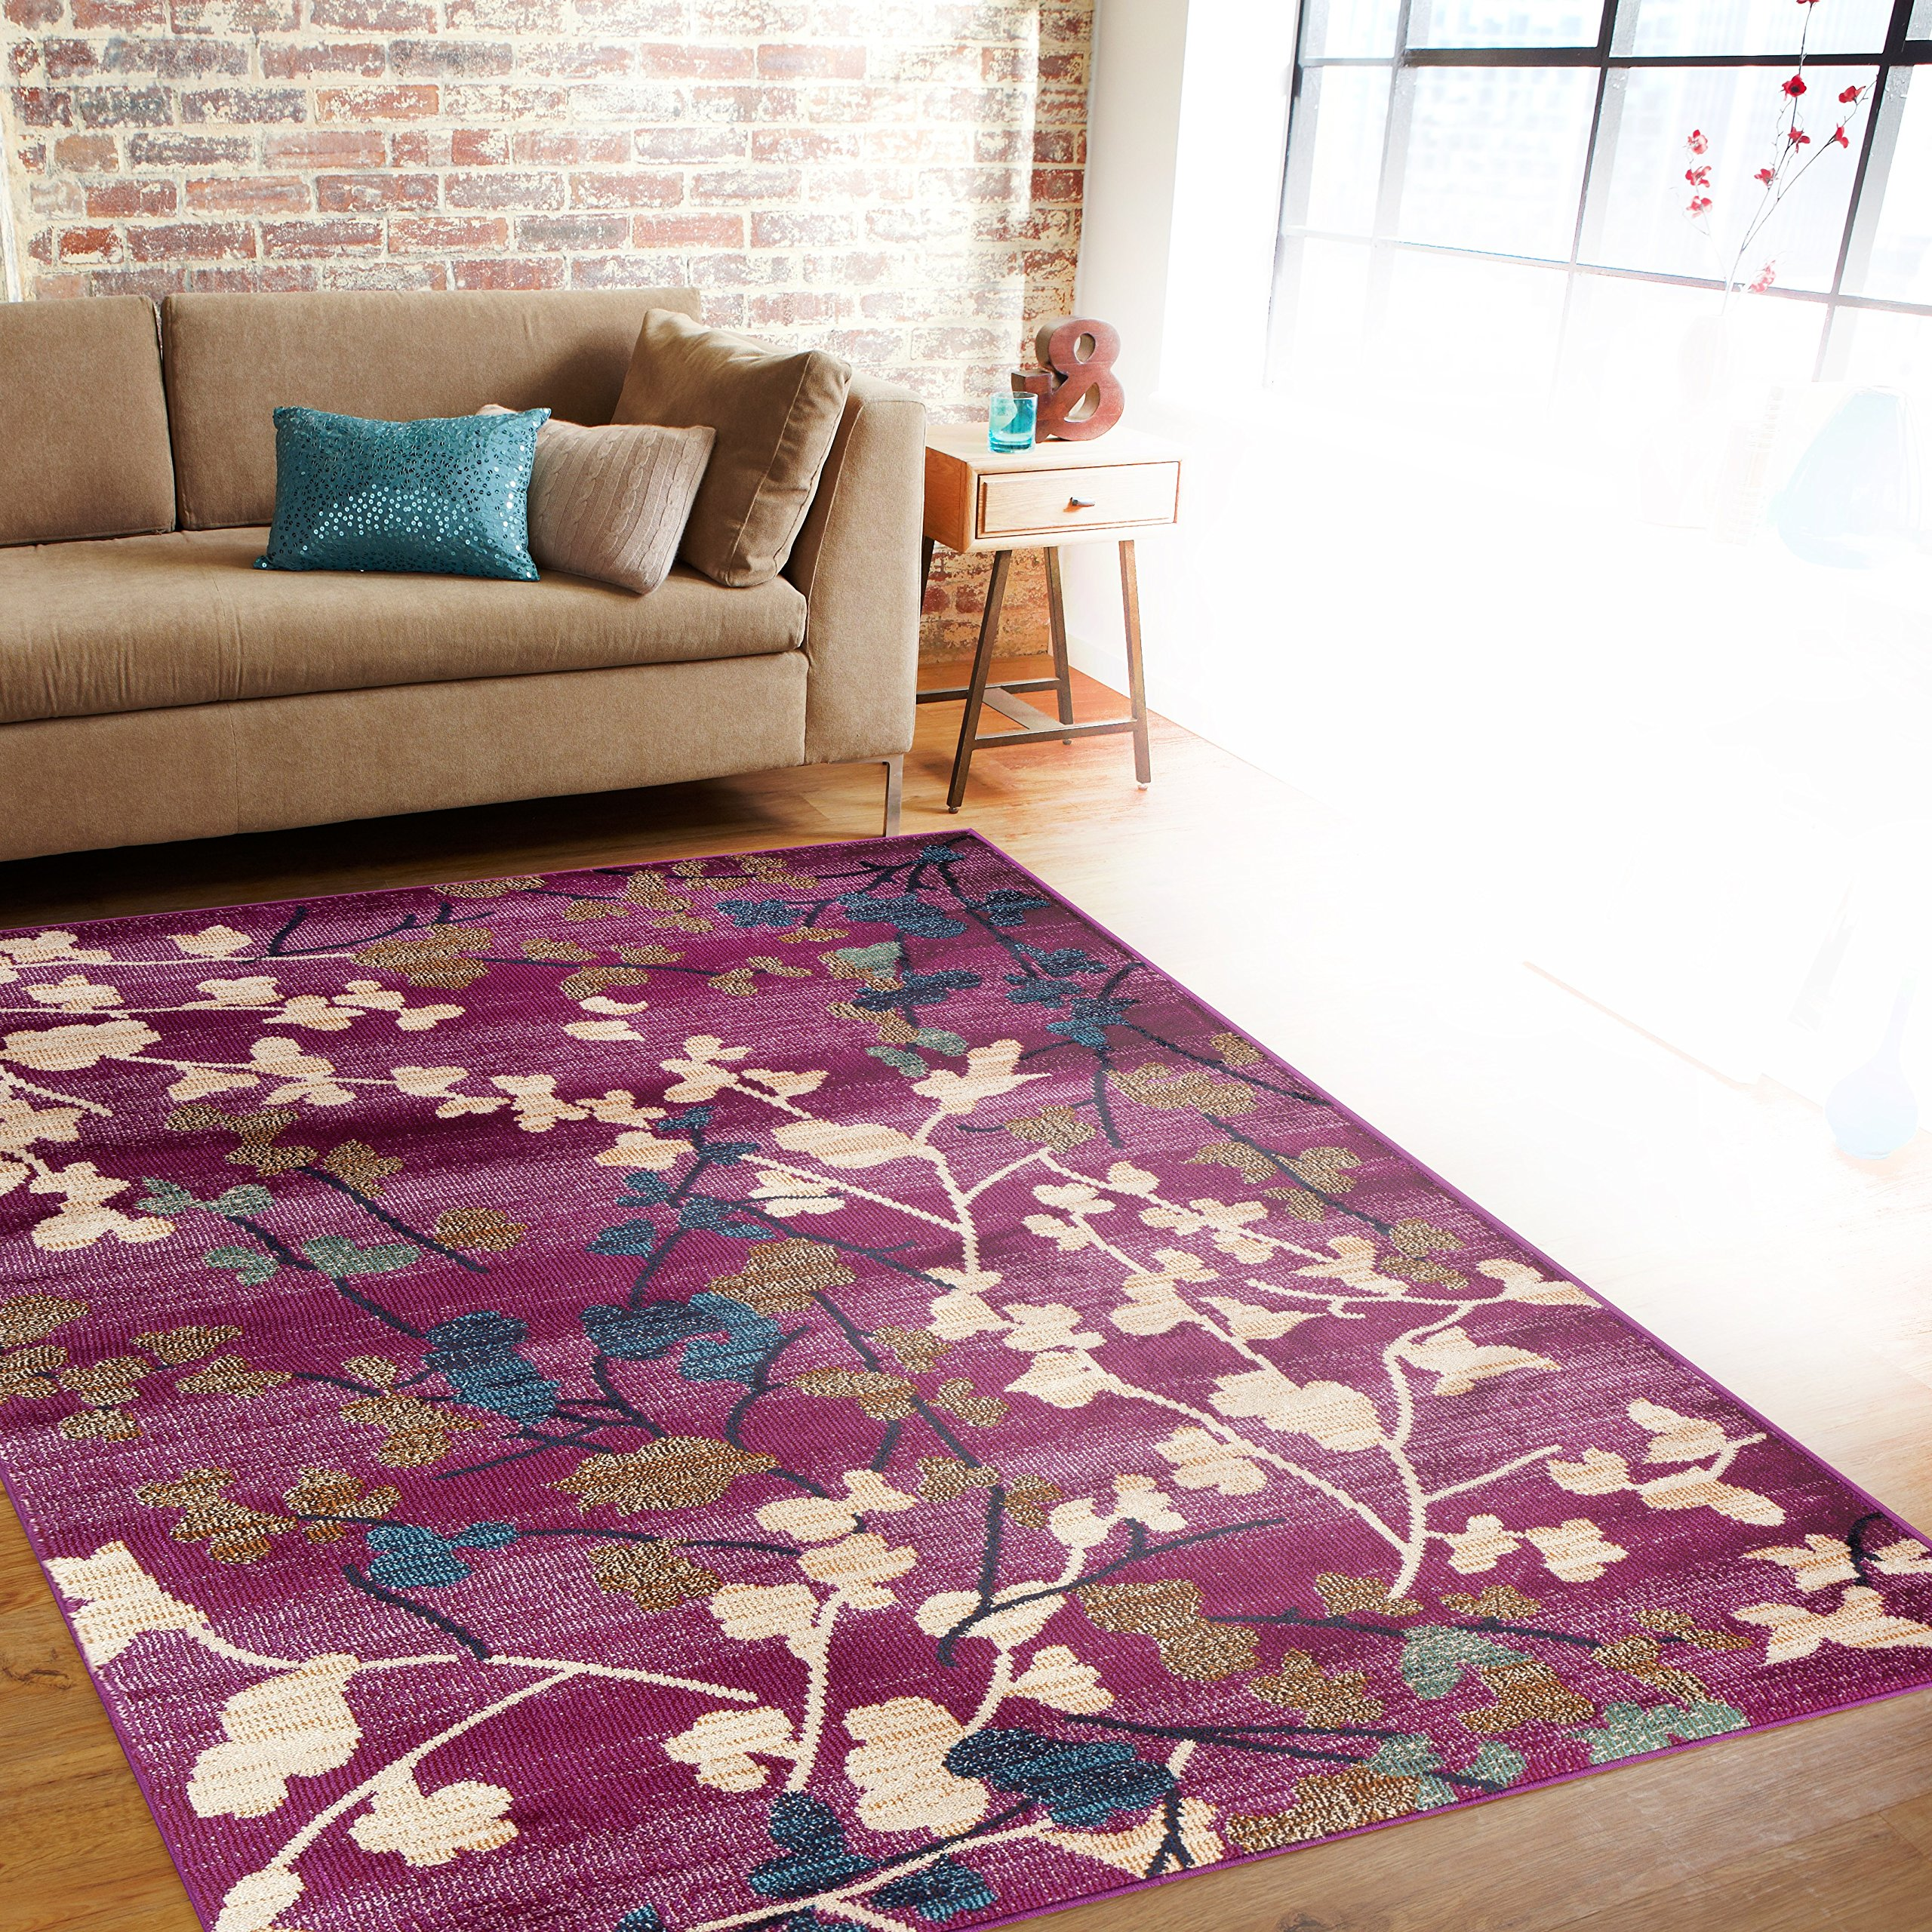 Rugshop Contemporary Floral Soft Area Rug, 2' X 3', Purple